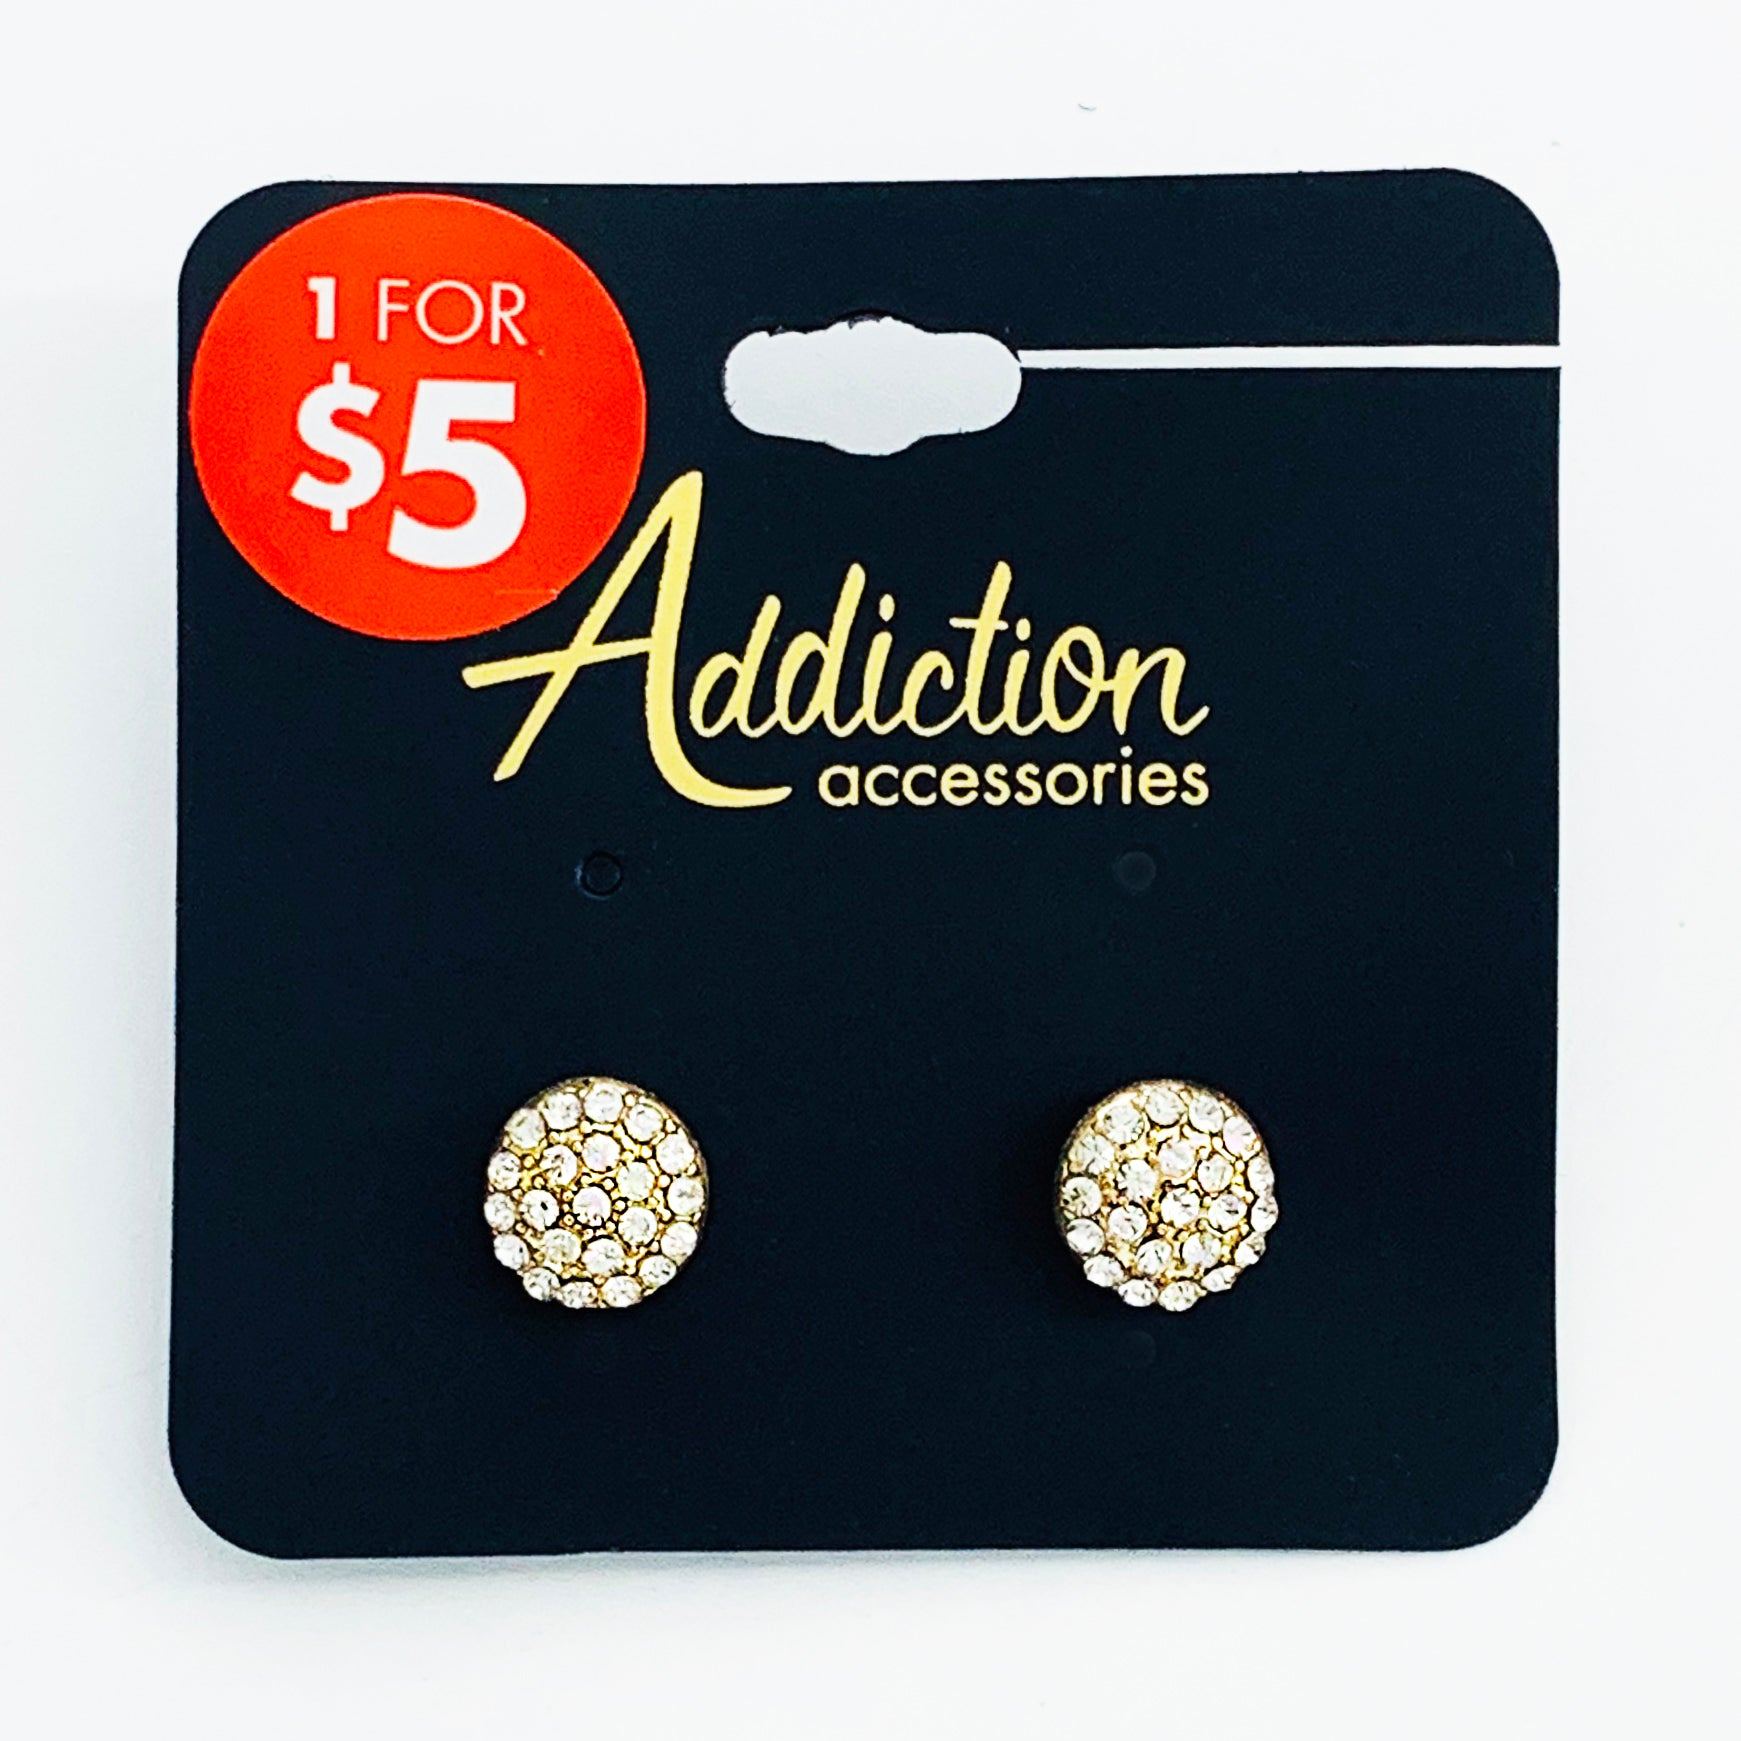 Round gold earrings with diamante gems